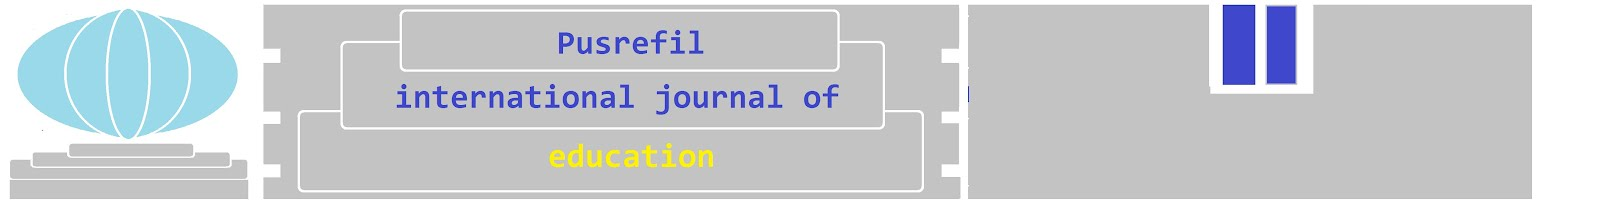 PUSREFIL International Journal of Education